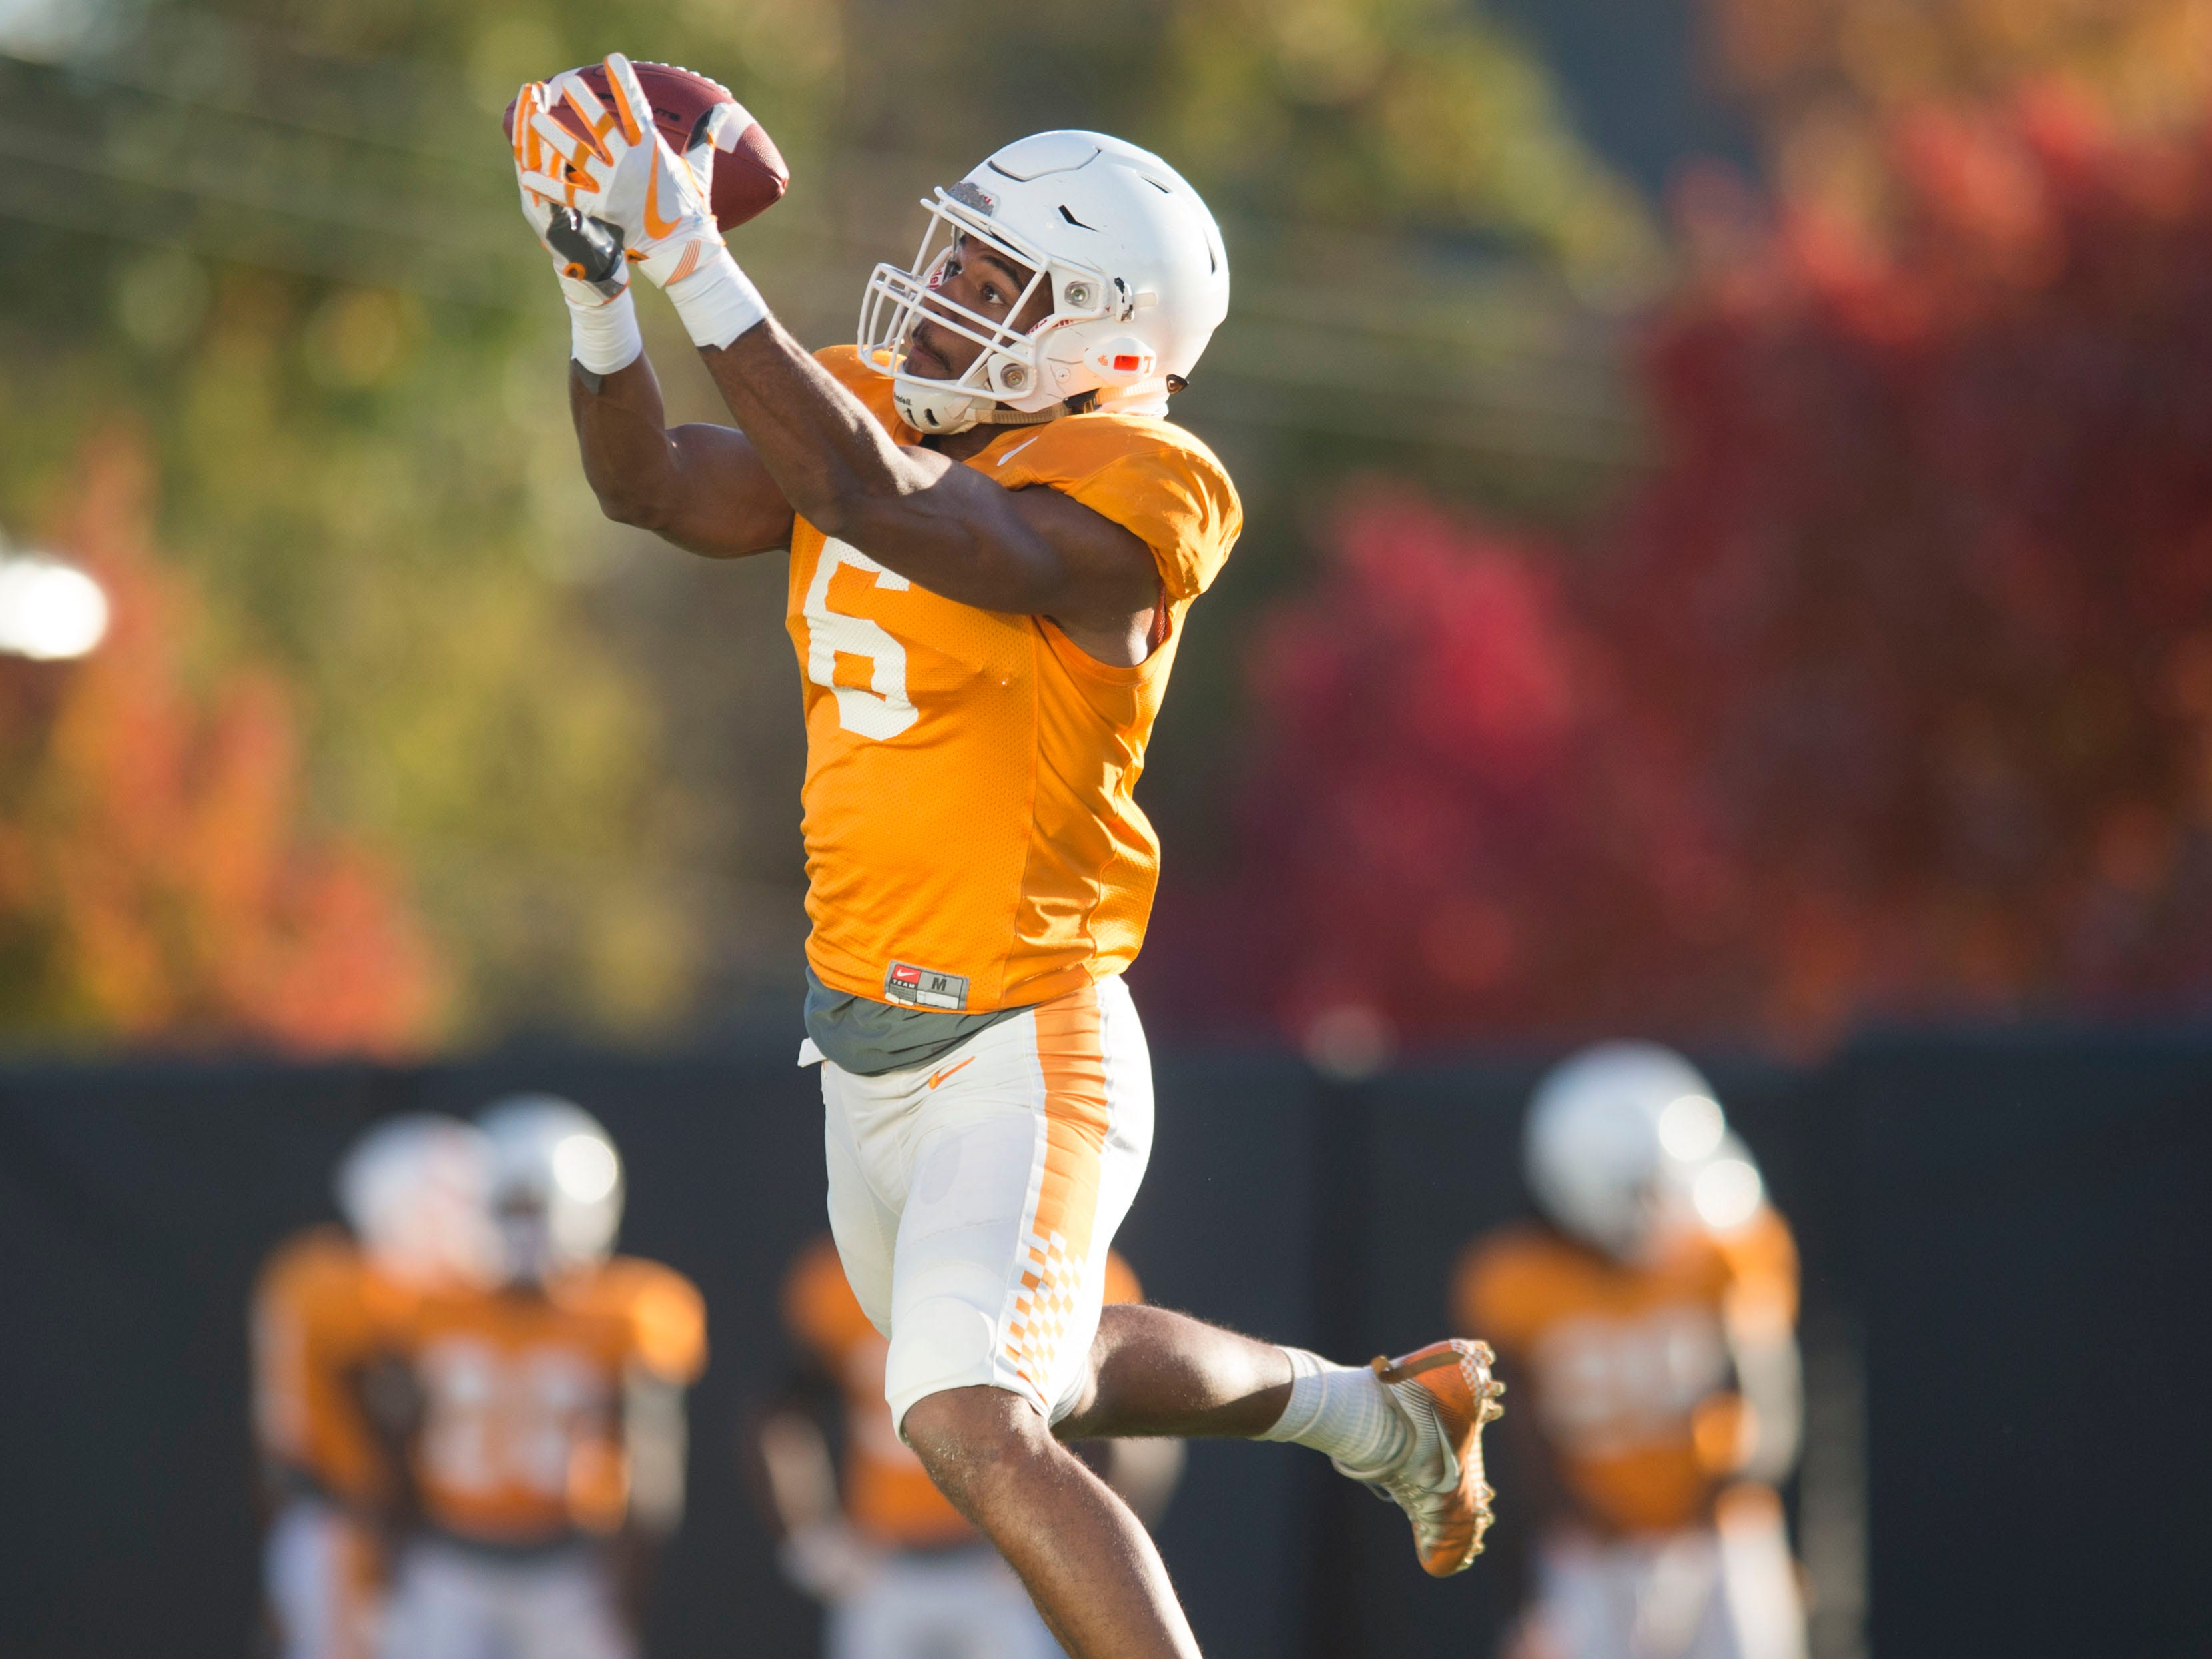 Tennessee defensive back Alontae Taylor (6) at football practice on Tuesday, November 6, 2018.